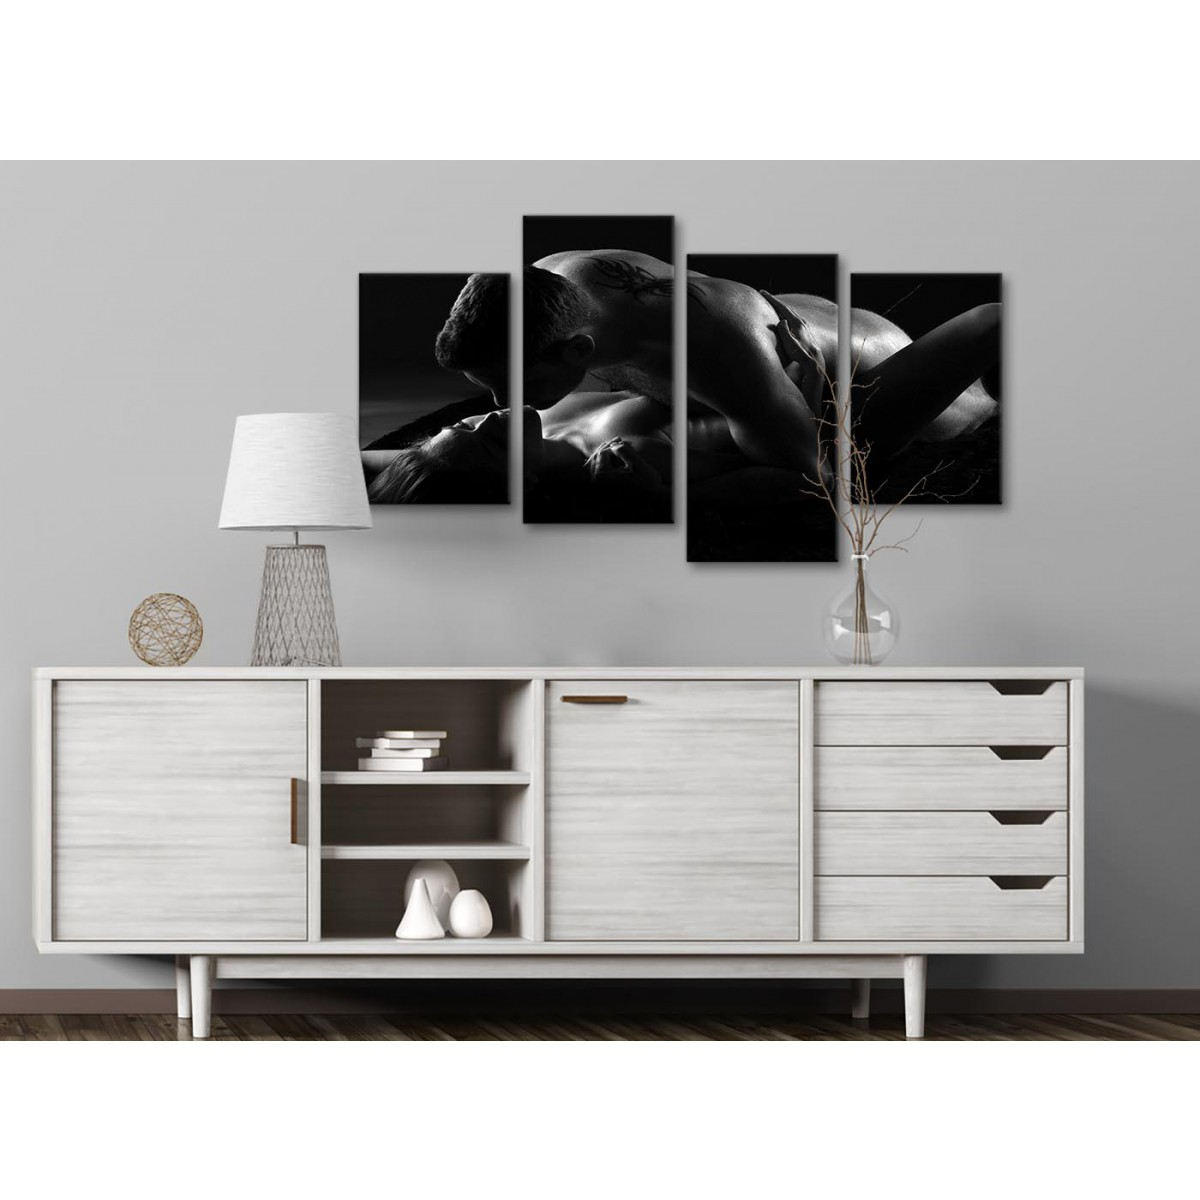 Large Romantic Nude Couple Erotica Canvas Art Prints